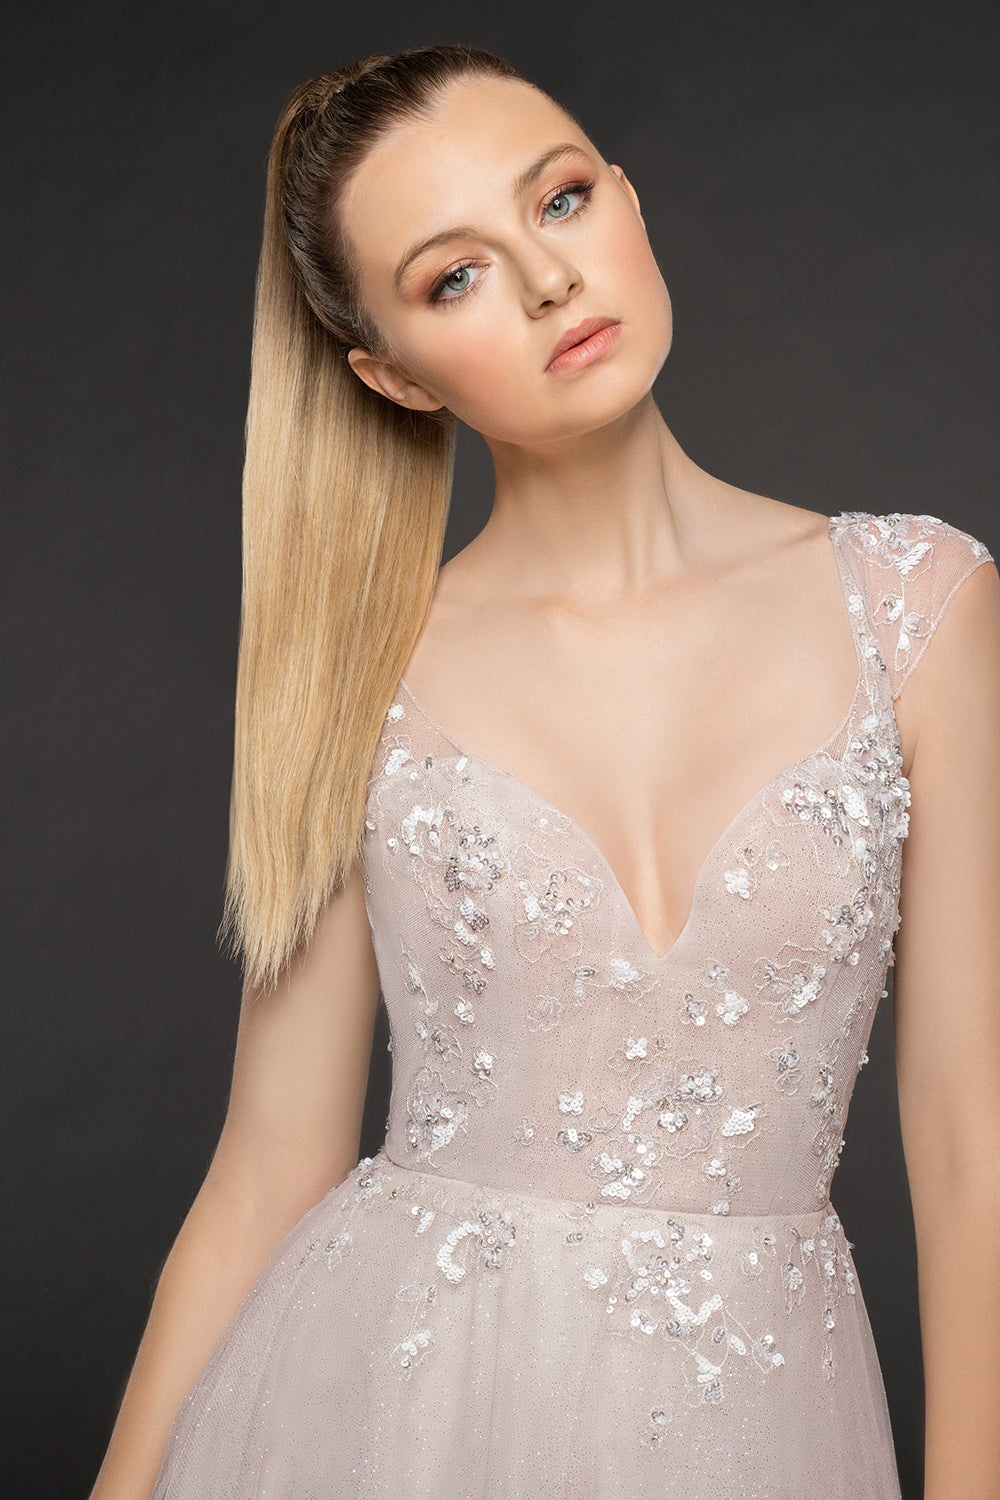 Amour - New, Gown, Blush by Hayley Paige - Eternal Bridal